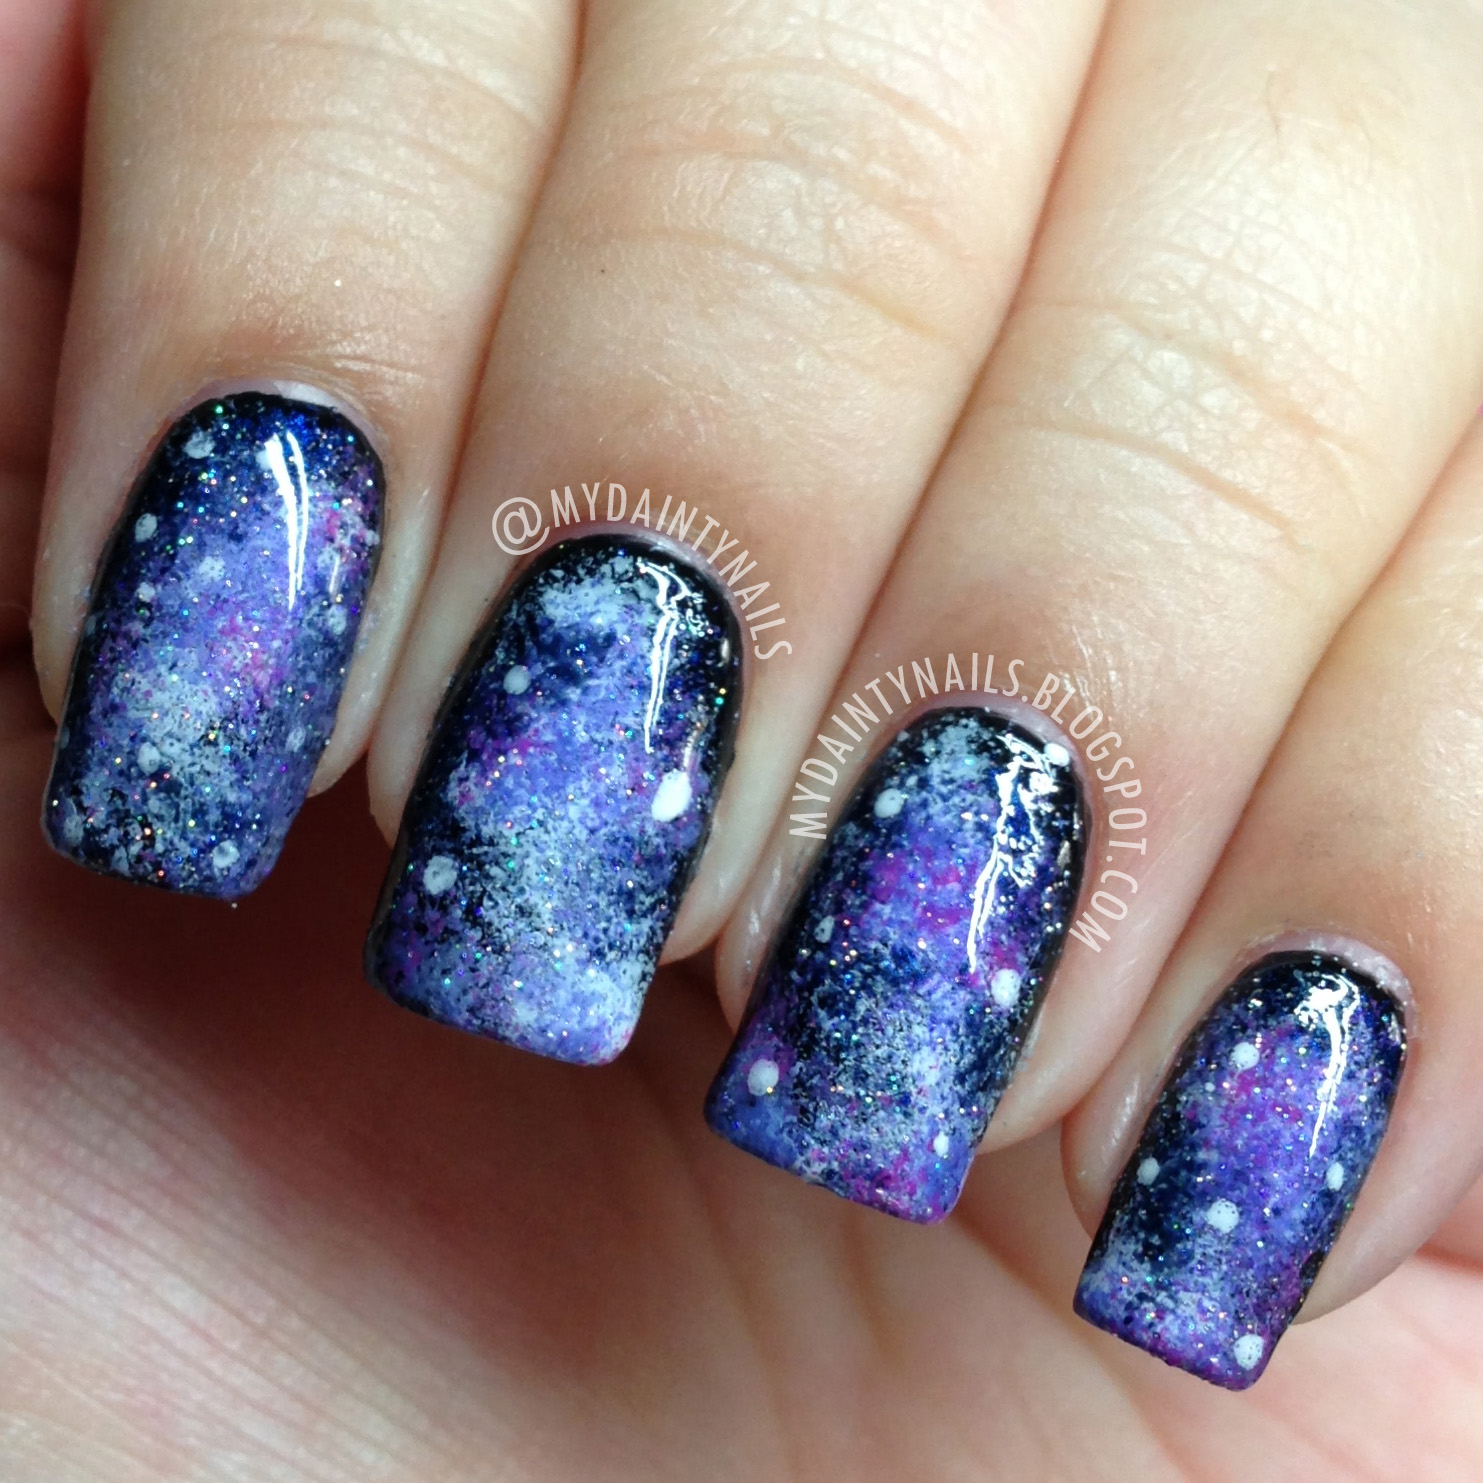 My Dainty Nails: Galaxy Nails